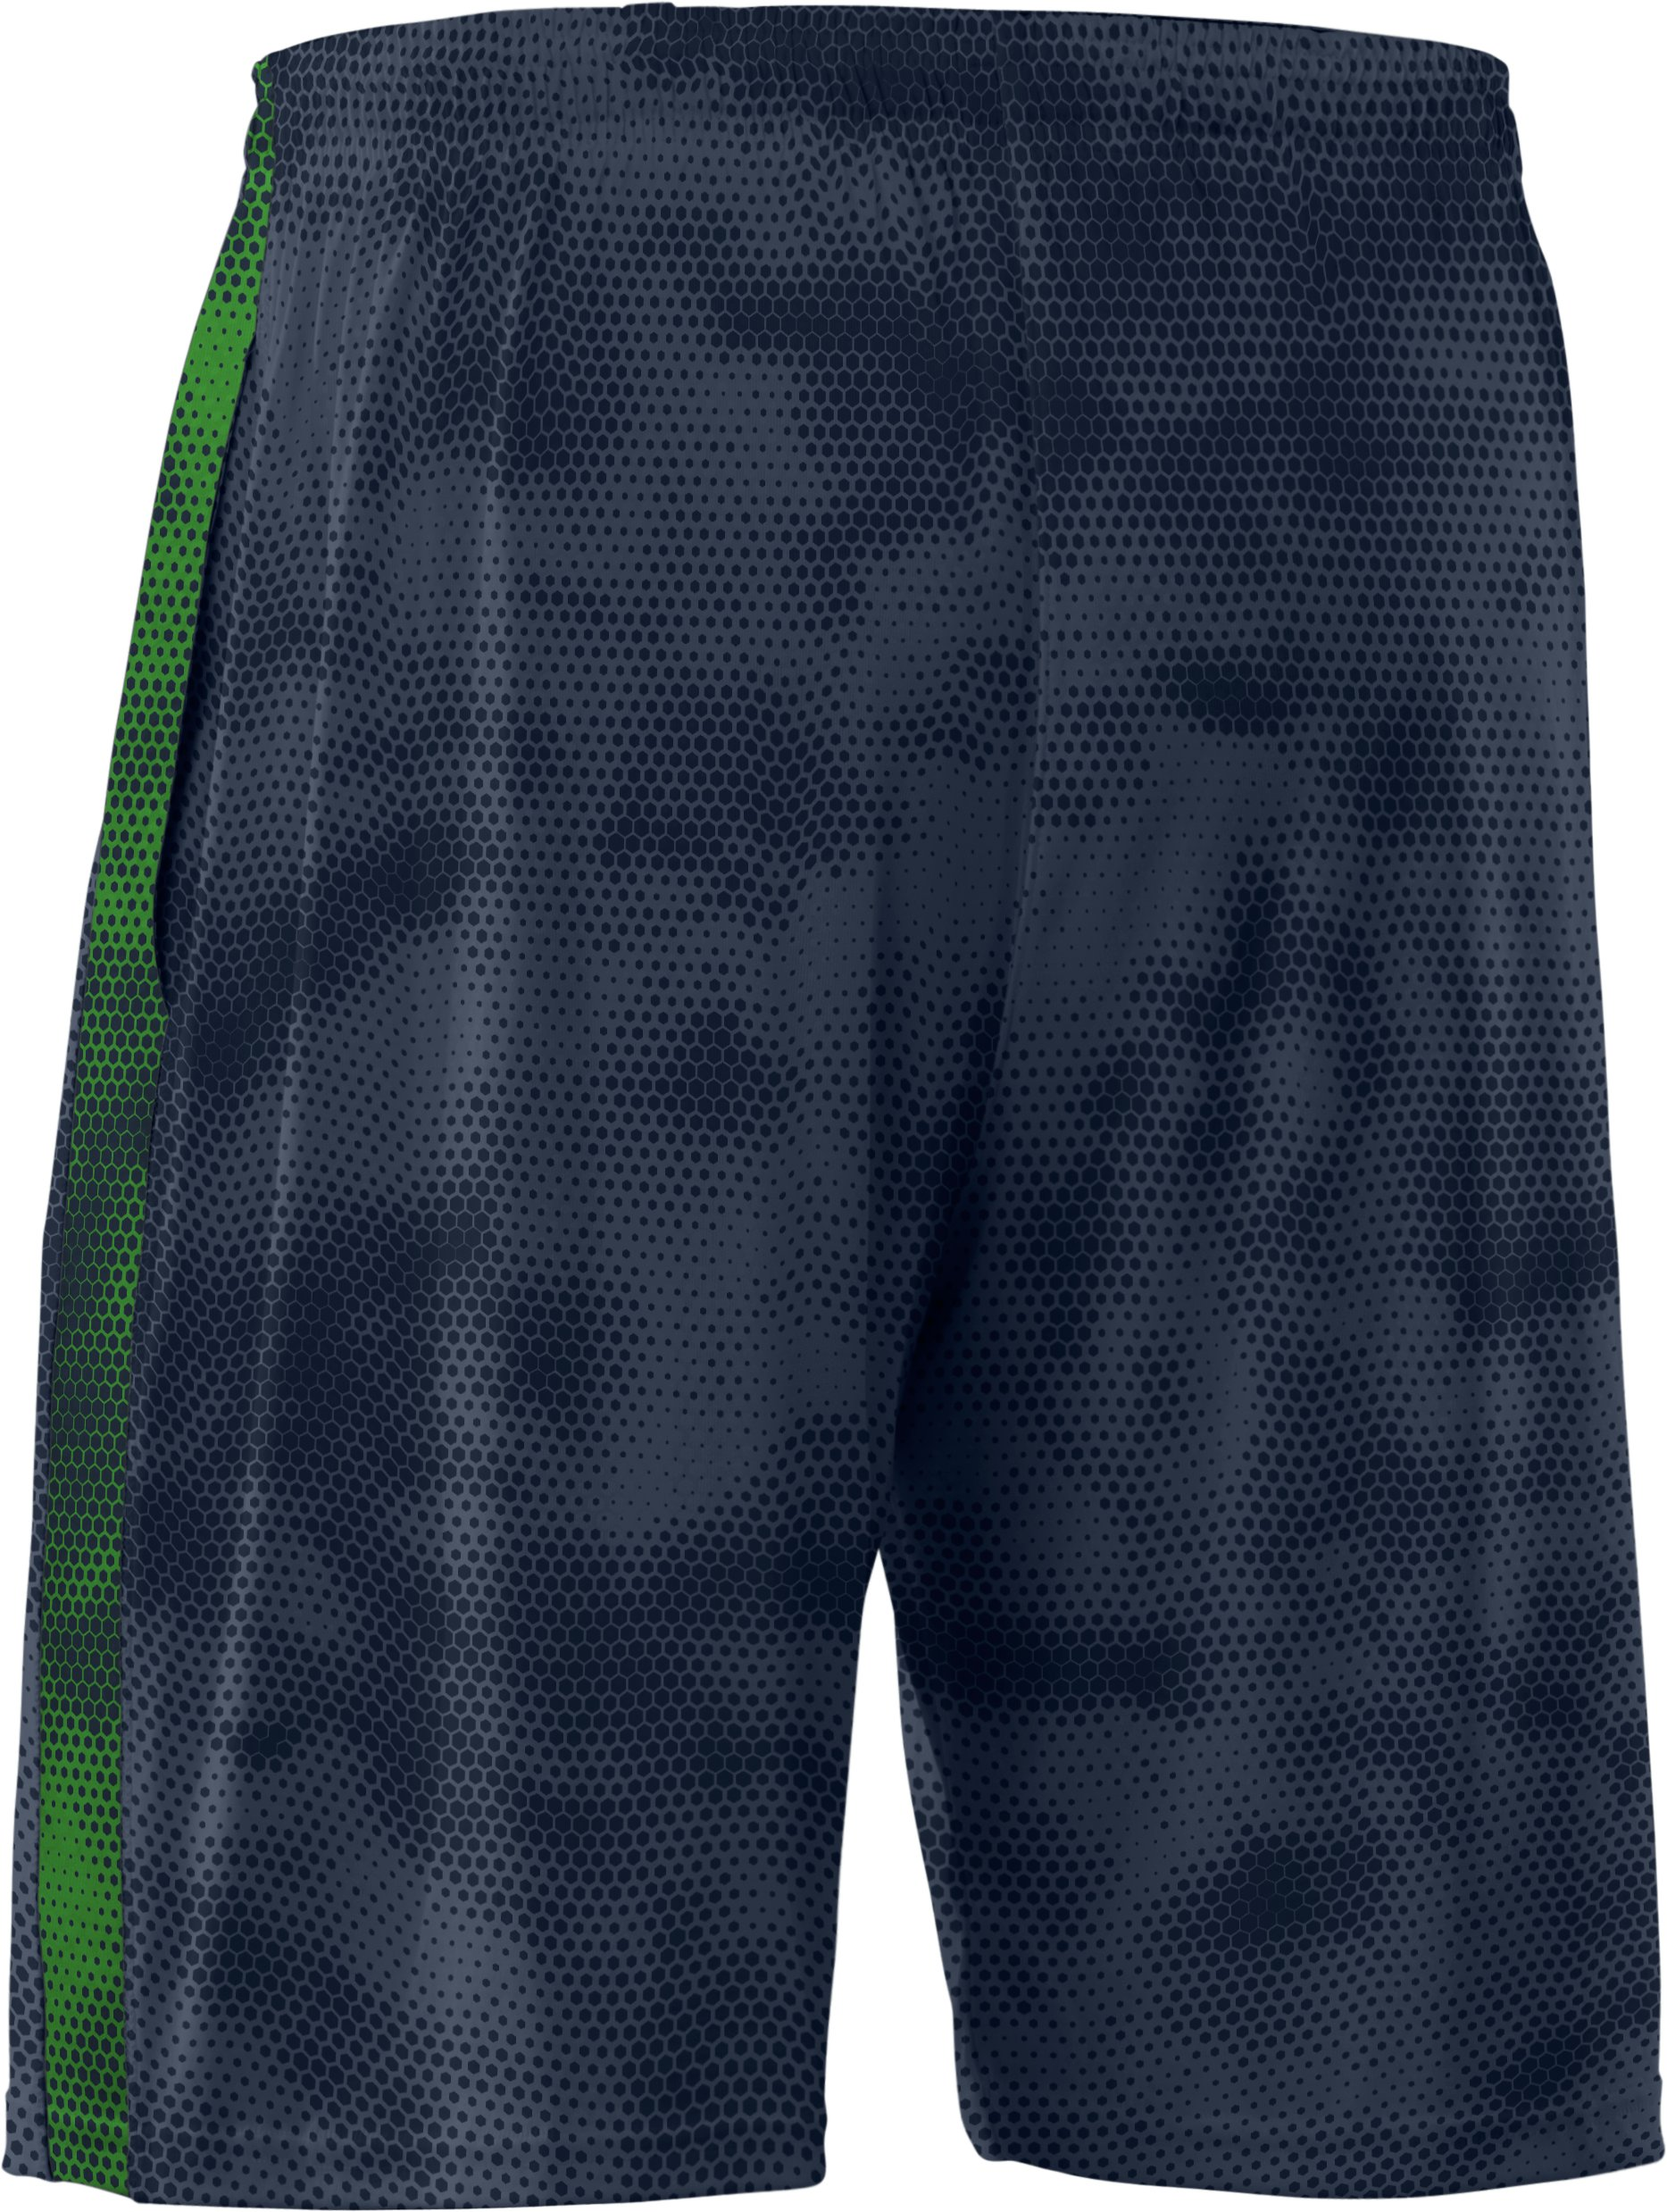 Men's UA Micro Printed Shorts, Wire